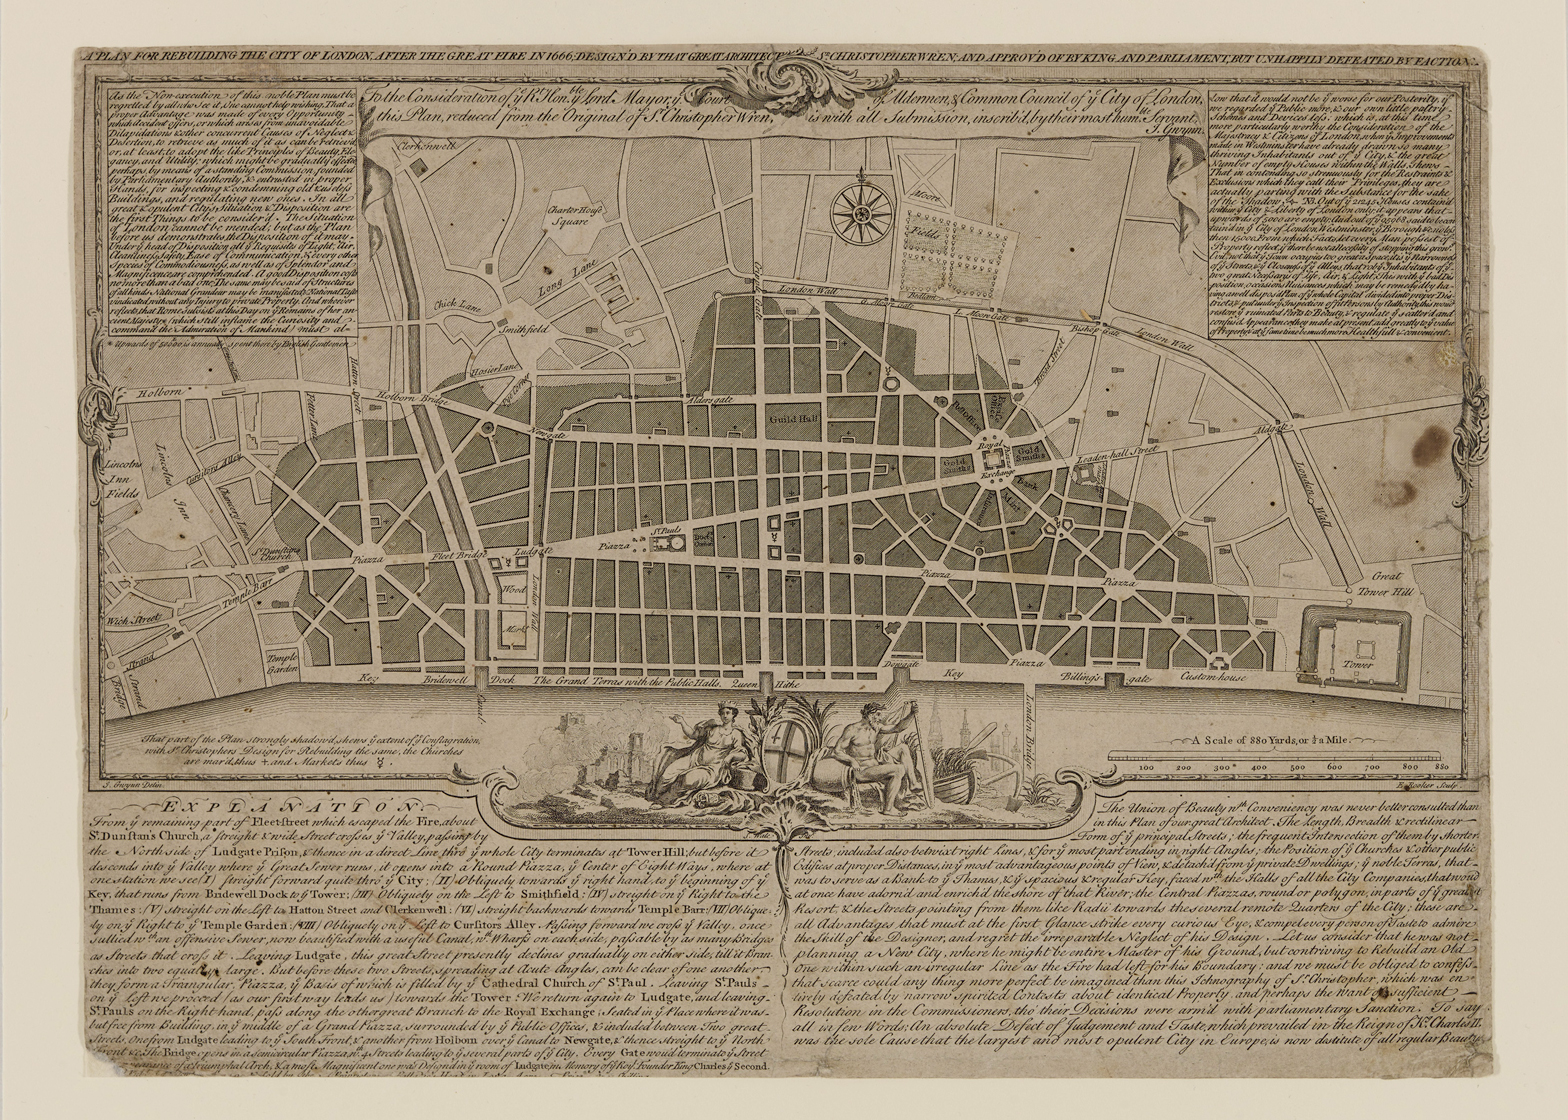 Sir Christopher Wren's plan for rebuilding the City of London after the Great Fire of 1666 will feature in the RIBA's Creation from Catastrophe exhibition